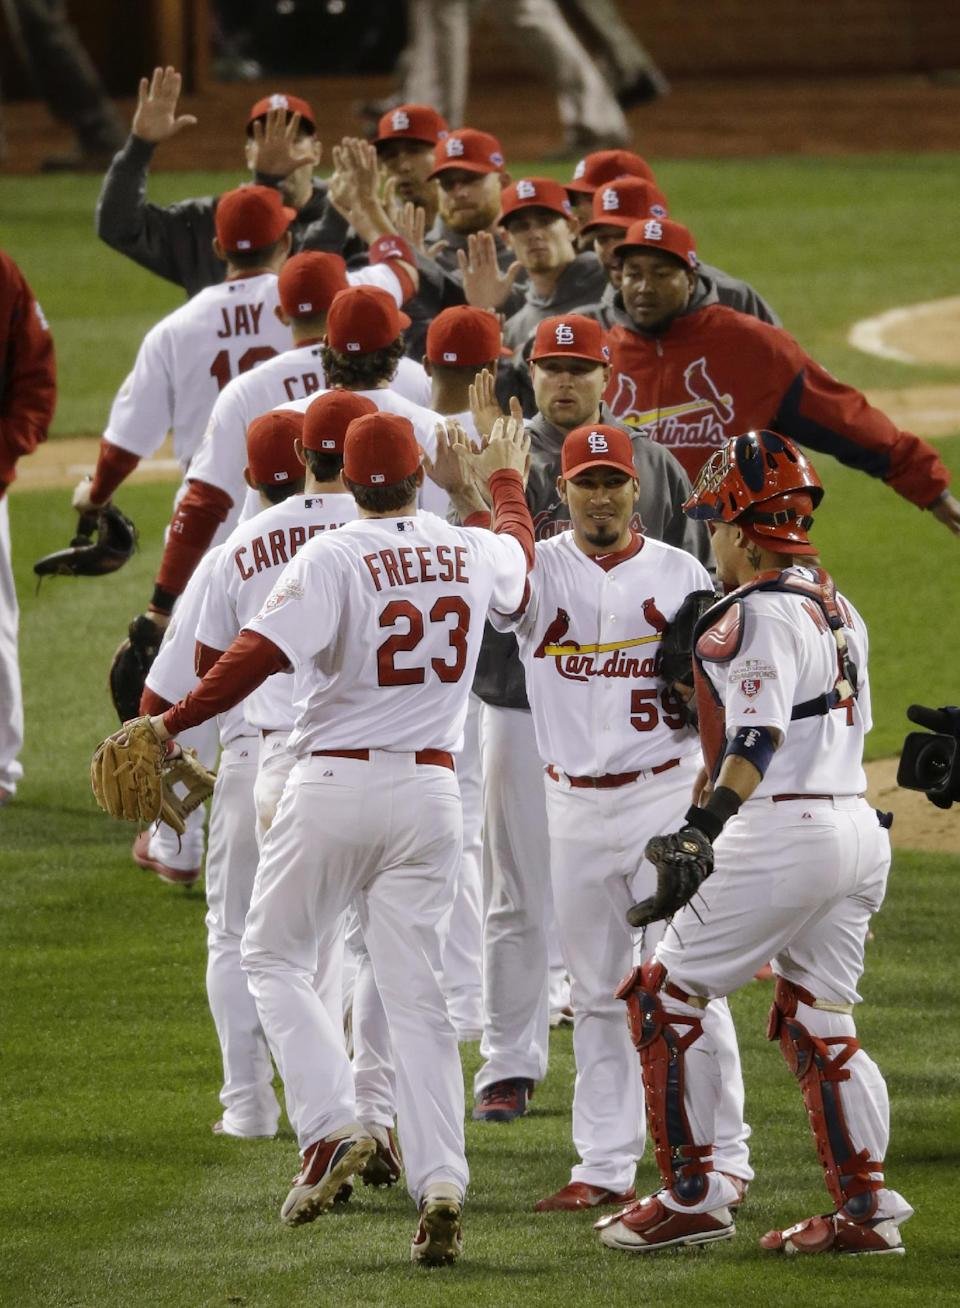 The St. Louis Cardinals celebrate after Game 4 of baseball's National League championship series against the San Francisco Giants Thursday, Oct. 18, 2012, in St. Louis. The Cardinals won 8-3 to take a 3-1 lead in the series. (AP Photo/Mark Humphrey)